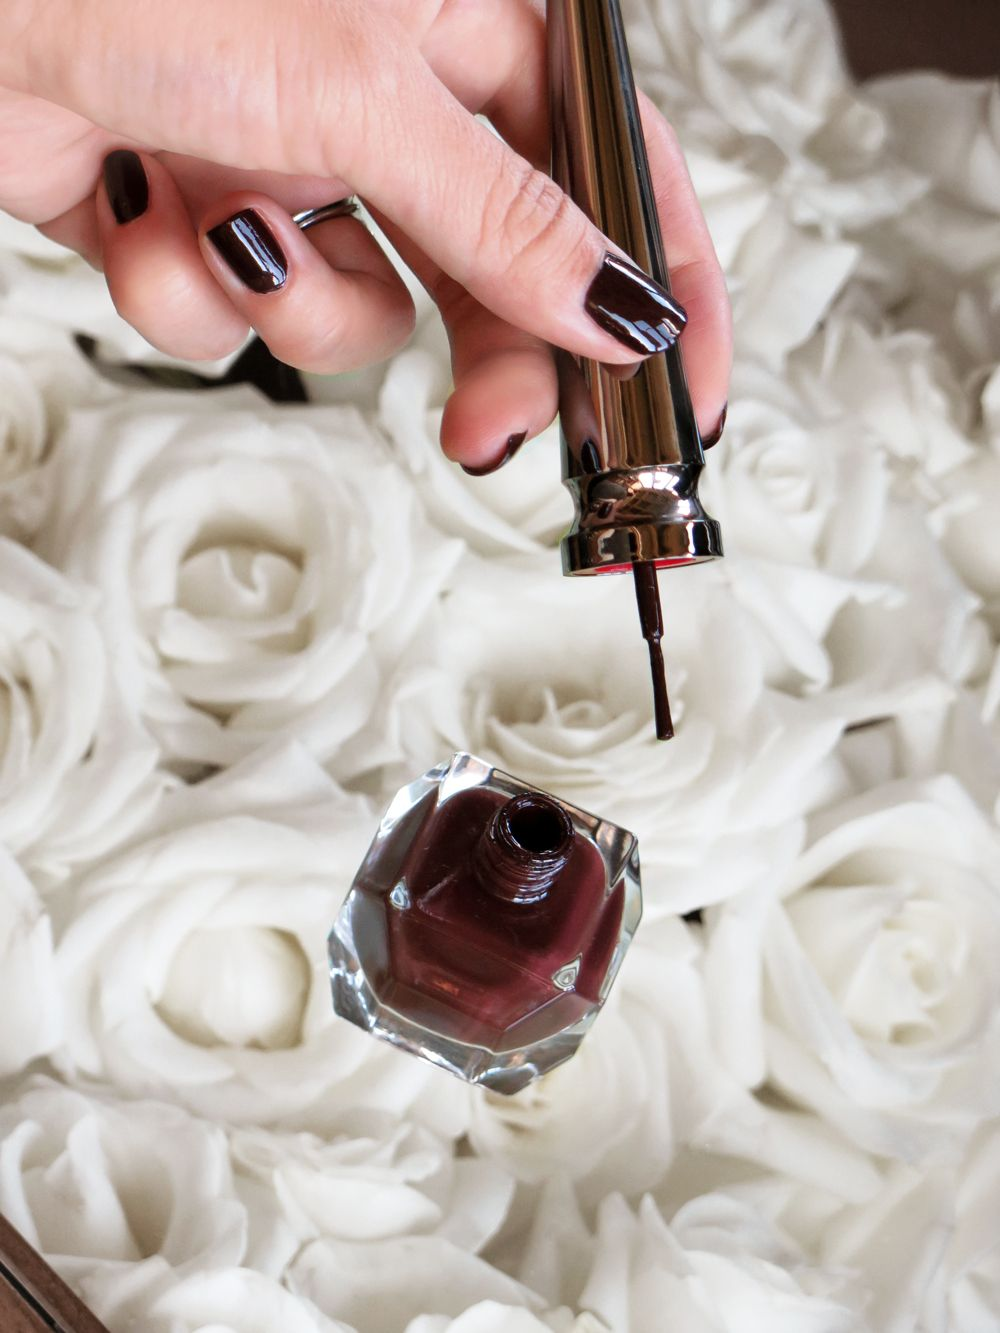 half off ac78a 3dc54 The Beauty Look Book: Christian Louboutin The Noirs Nail ...